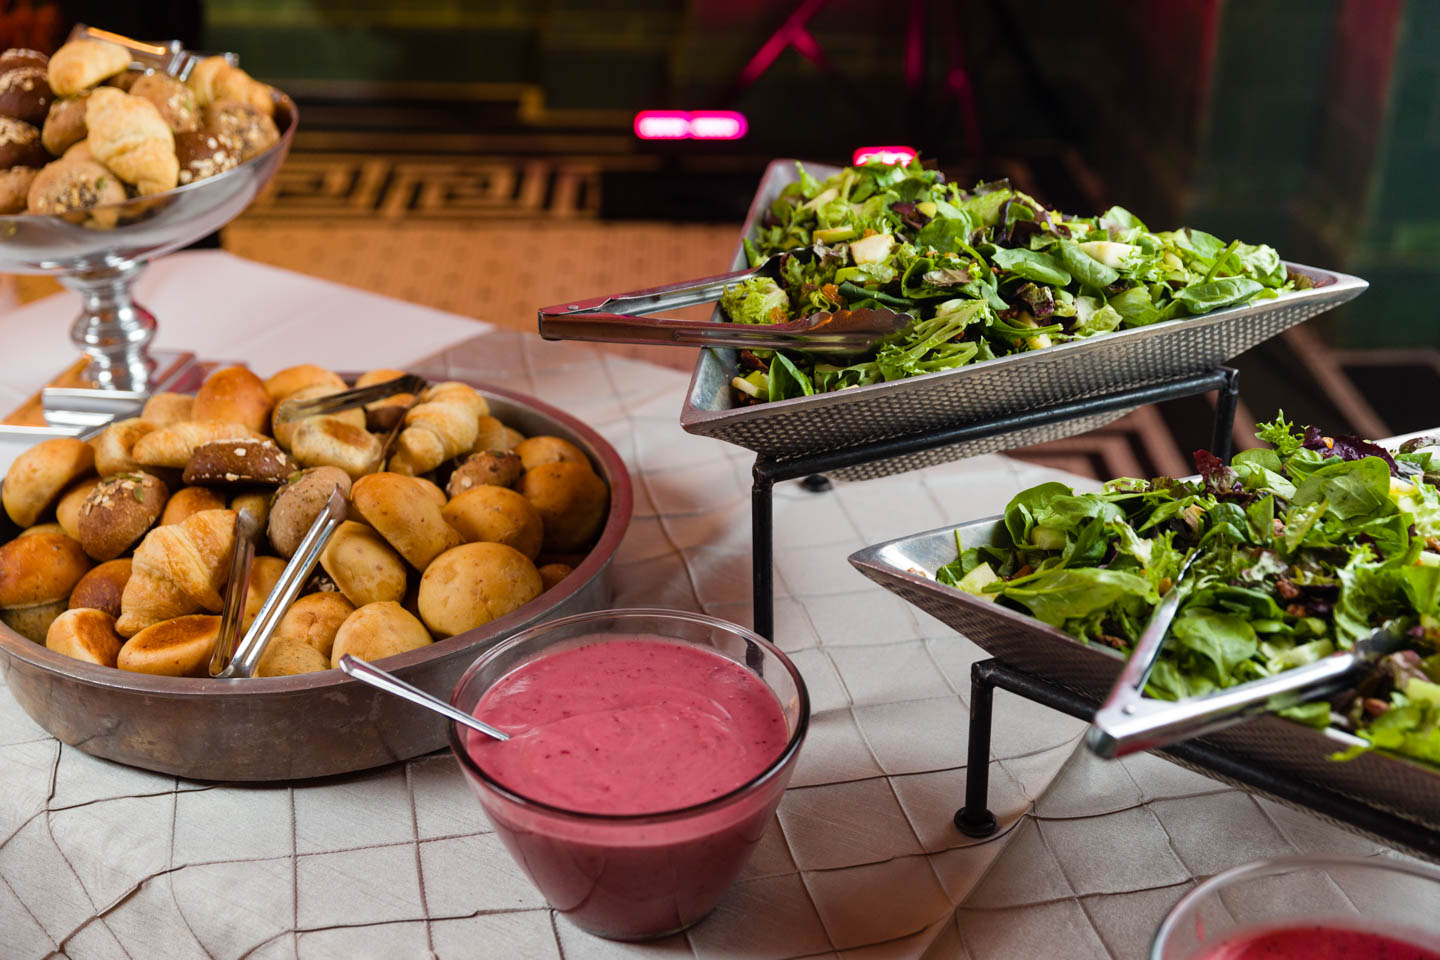 Buffet of salad and rolls